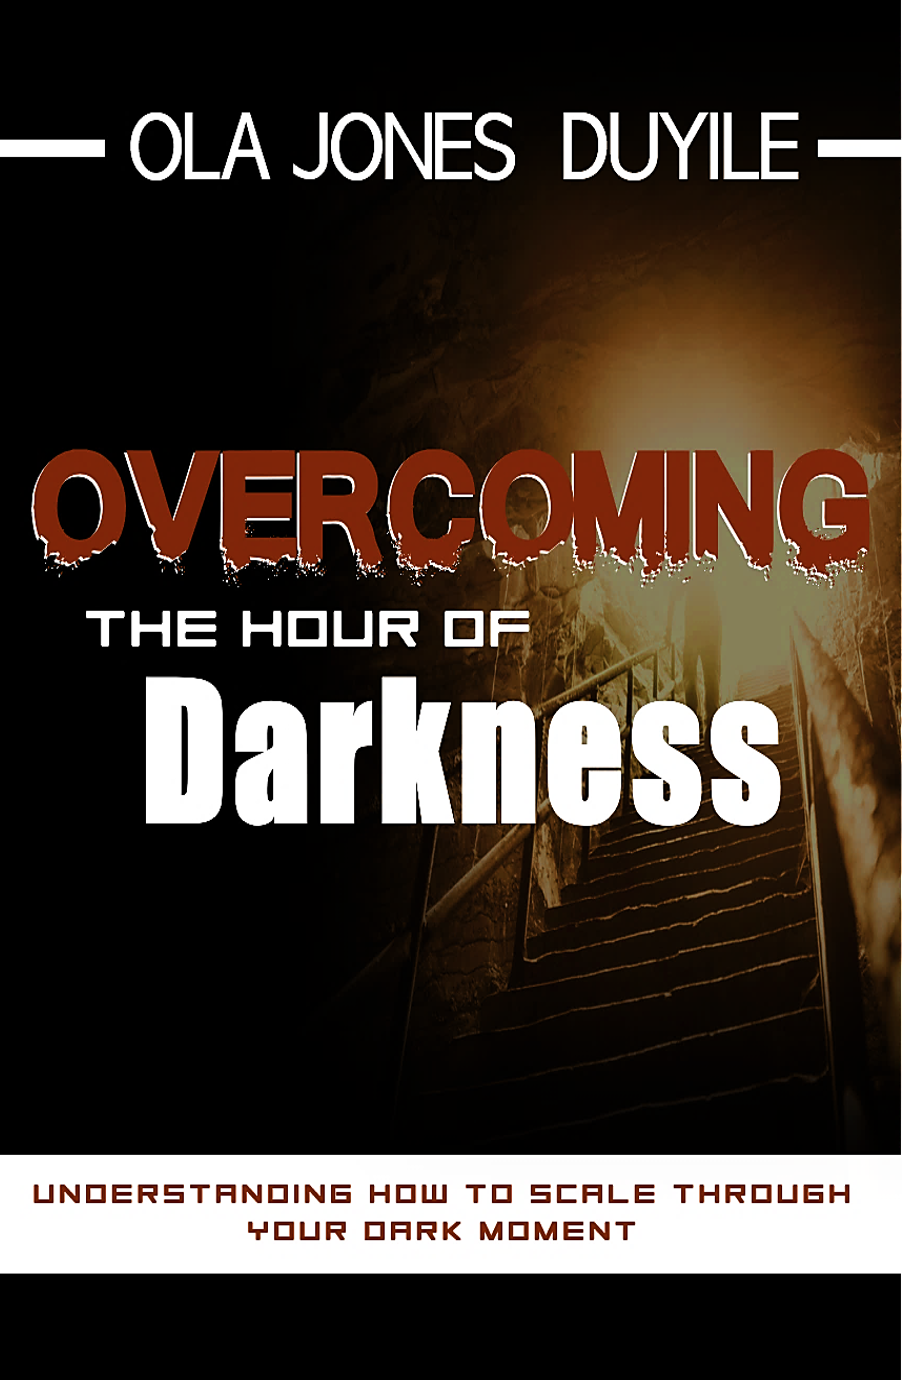 OVERCOMMING THE HOUR OF DARKNESS